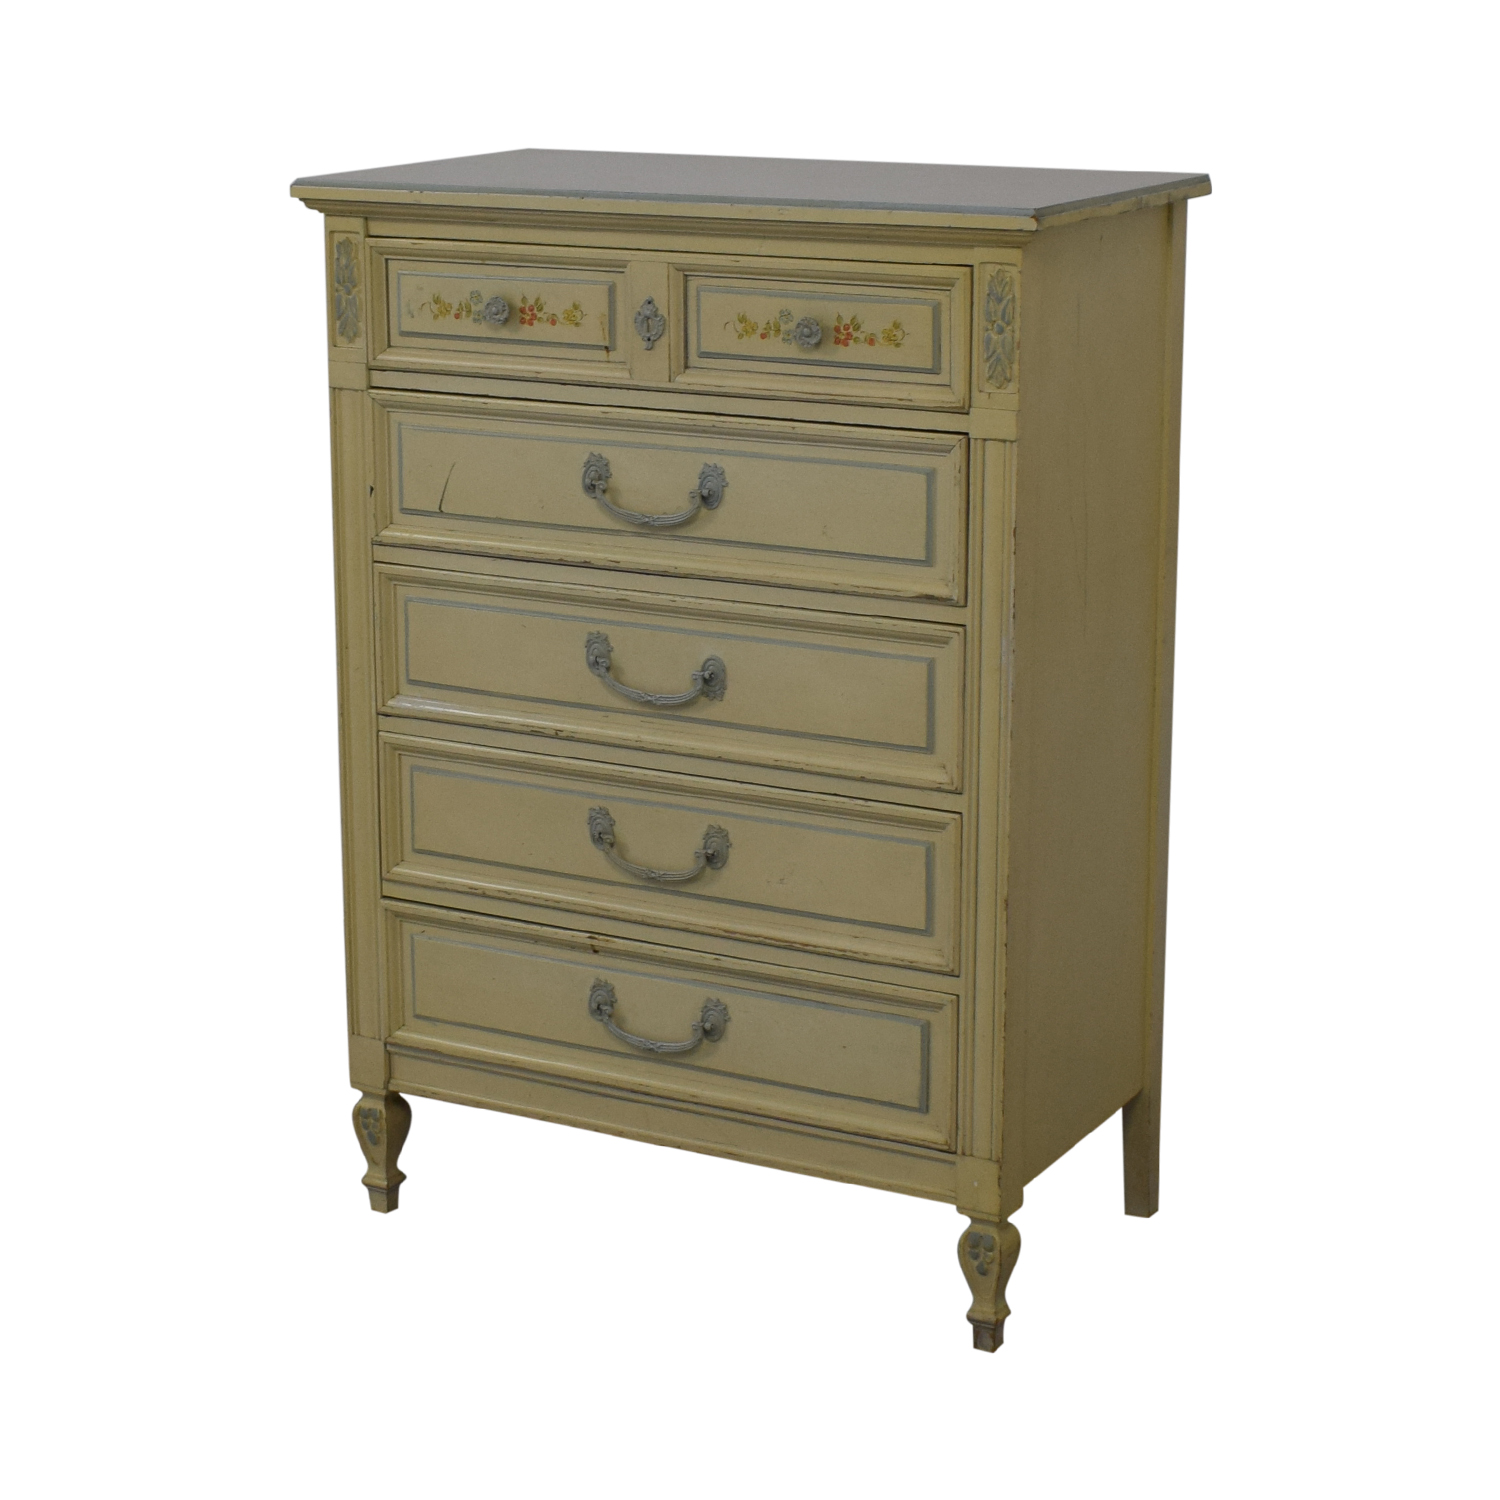 Dixie Furniture Company Dixie Furniture Company Victorian Five-Drawer Dresser discount